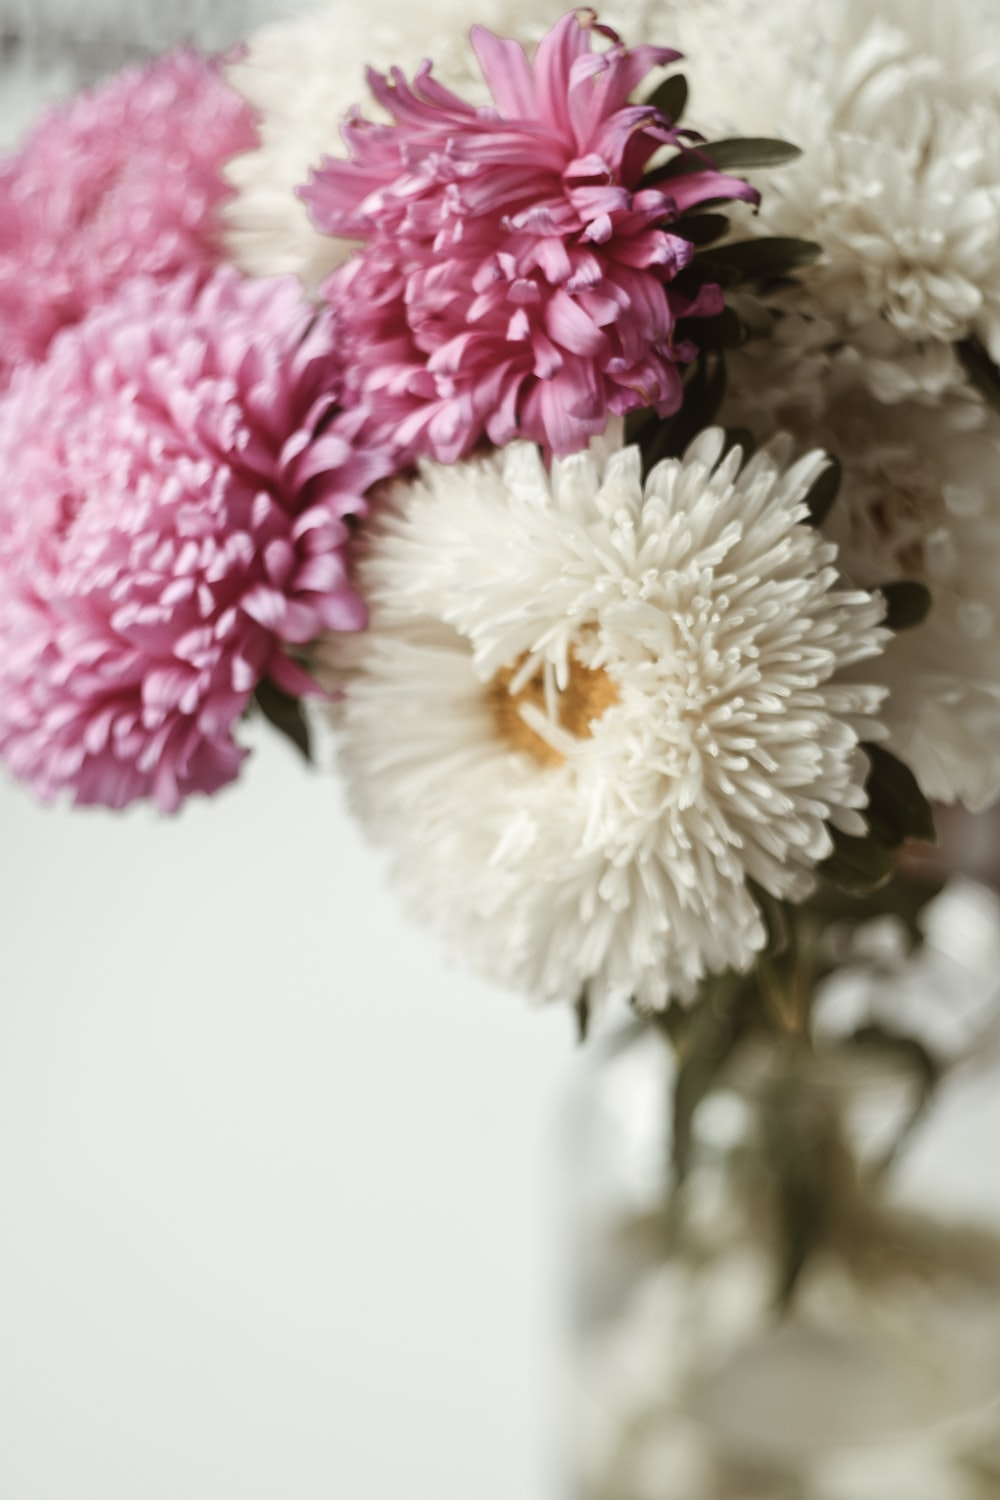 selective focus photography of white and pink petaled flower centerpiece